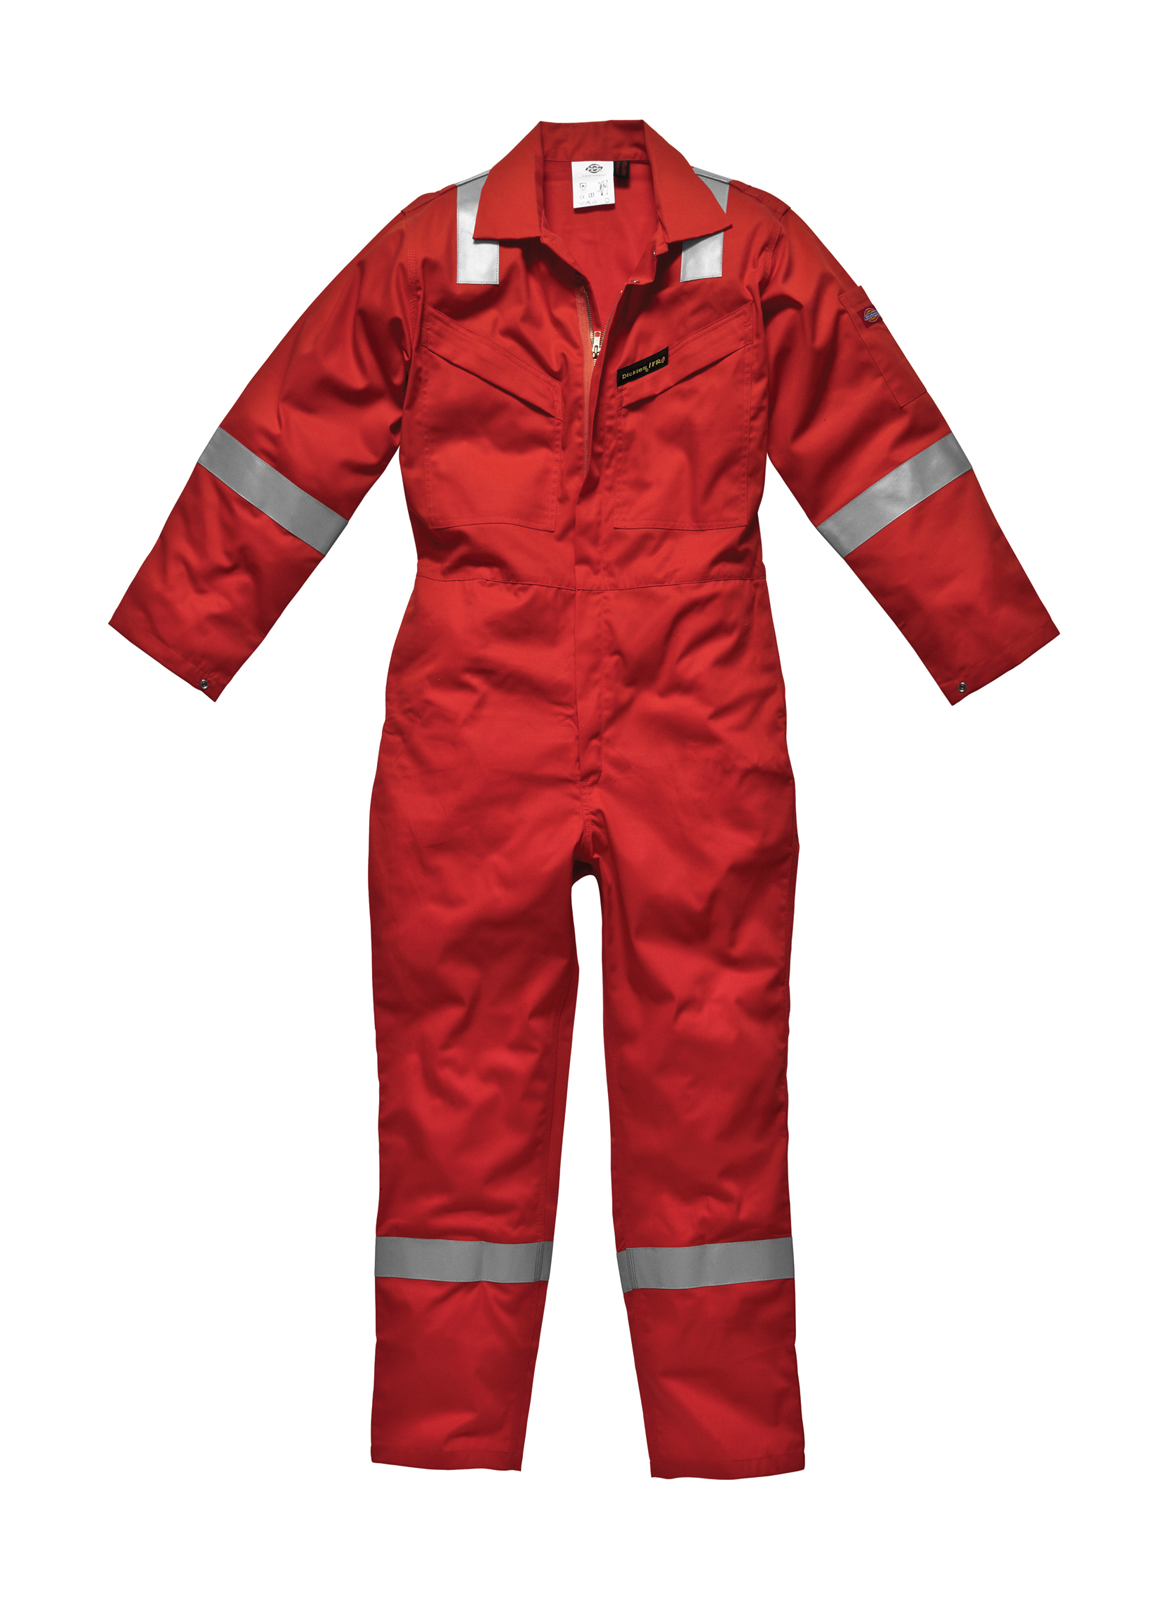 bodyguard-Coveralls-Dickies-Firechief-Pyrovatex-Coverall